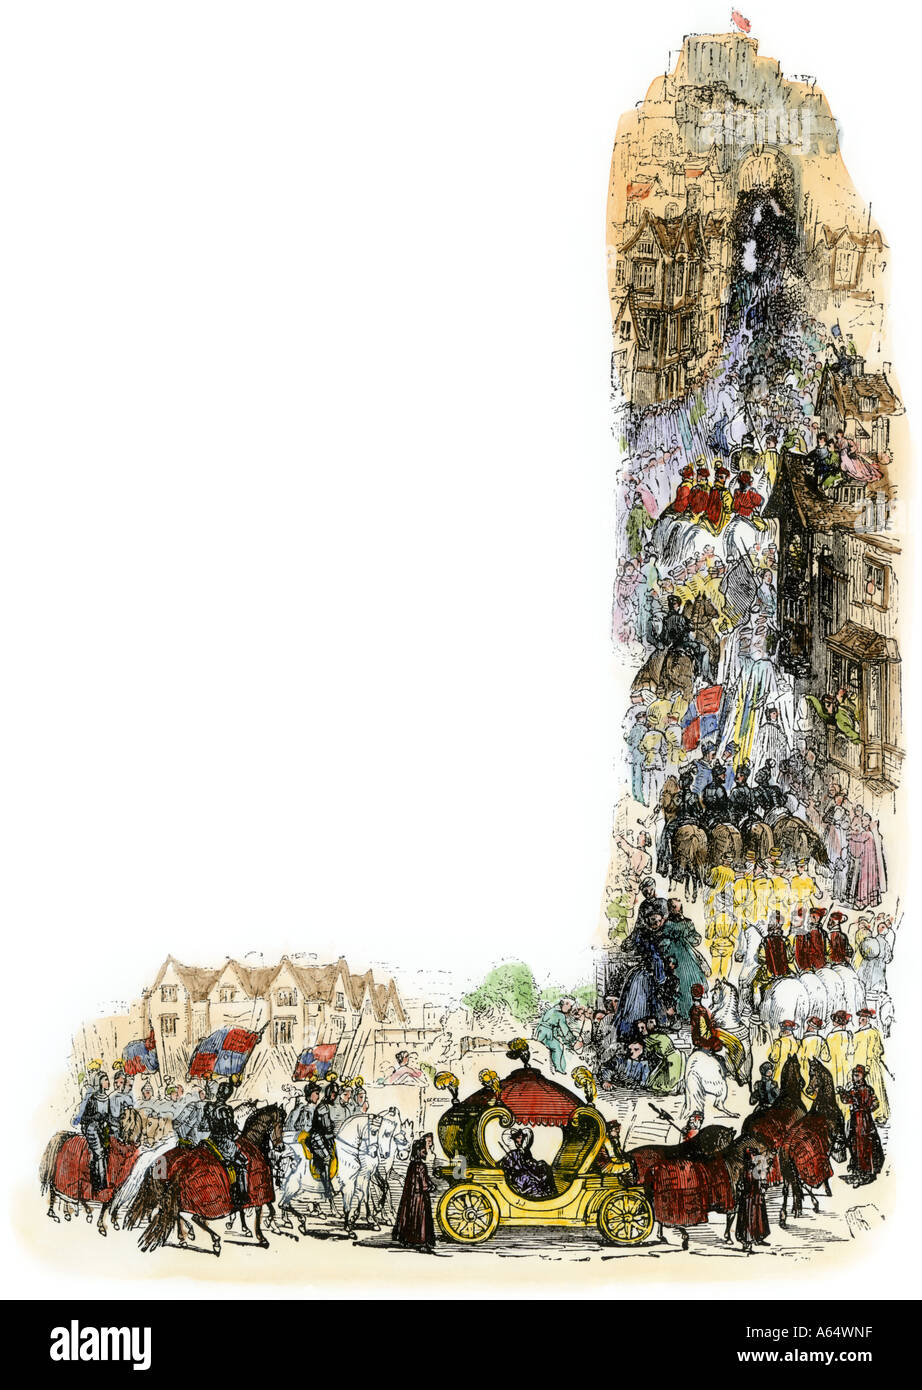 Queen Elizabeth's coronation procession to St Paul's Cathedral in London 1558. Hand-colored woodcut - Stock Image